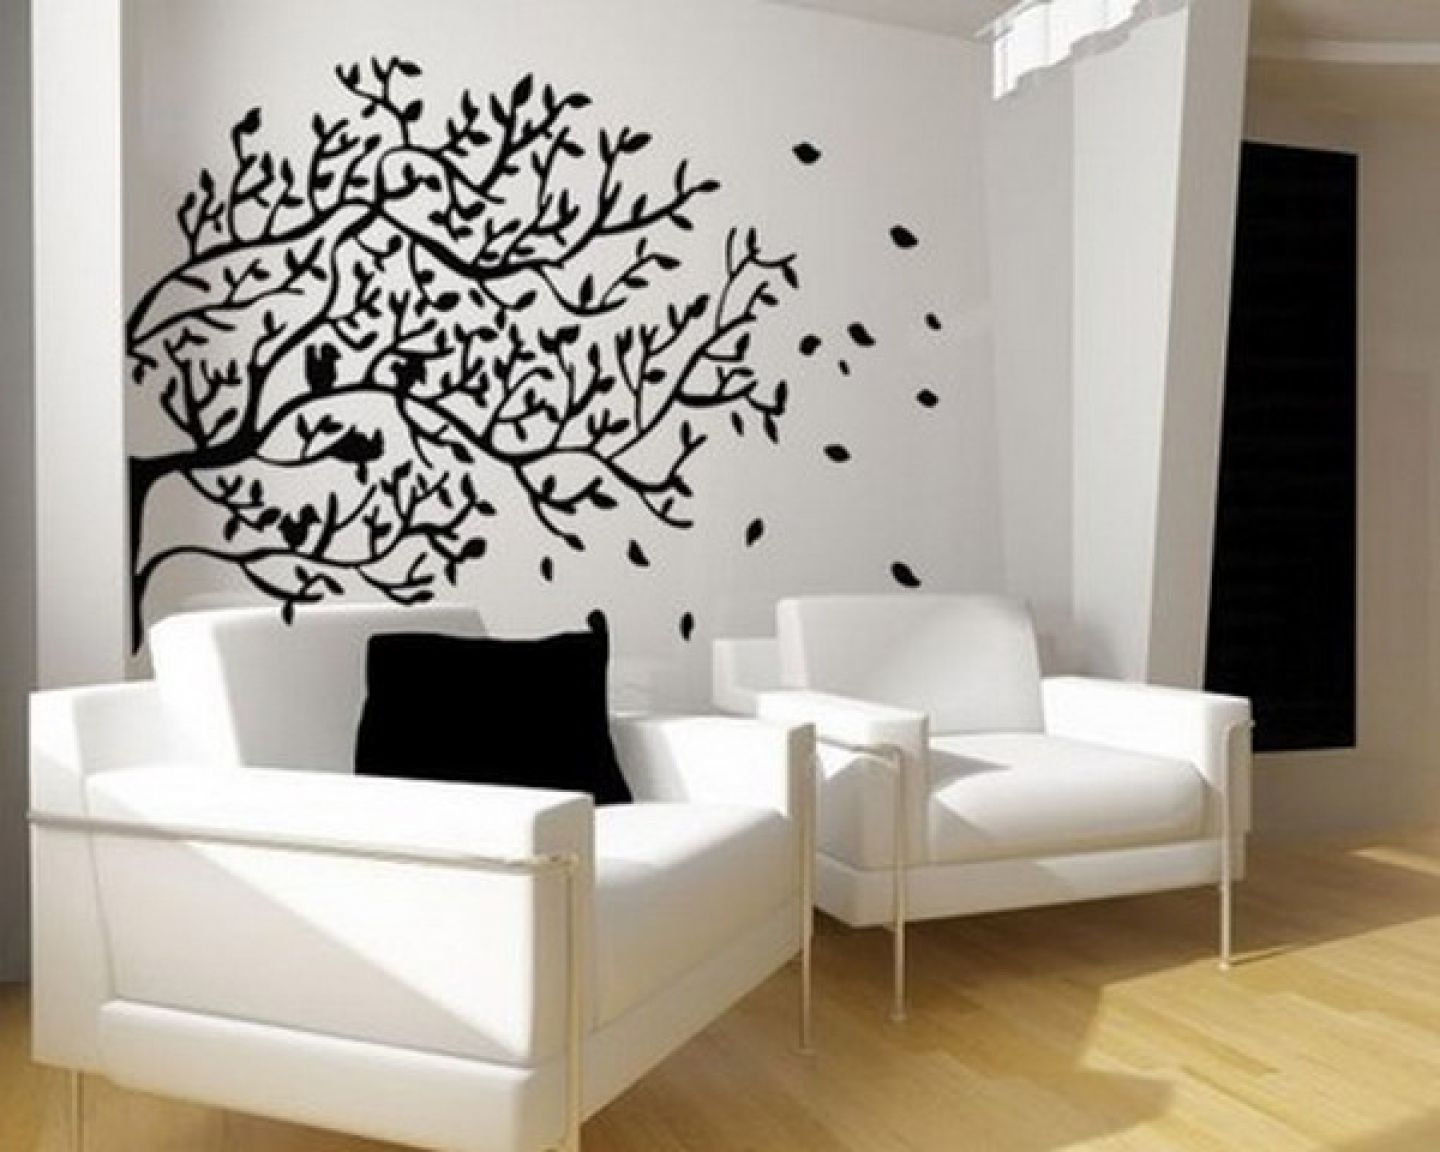 Luxury Living Room Tree Wall Murals Sticker Decorations Image - Living room wall design ideas